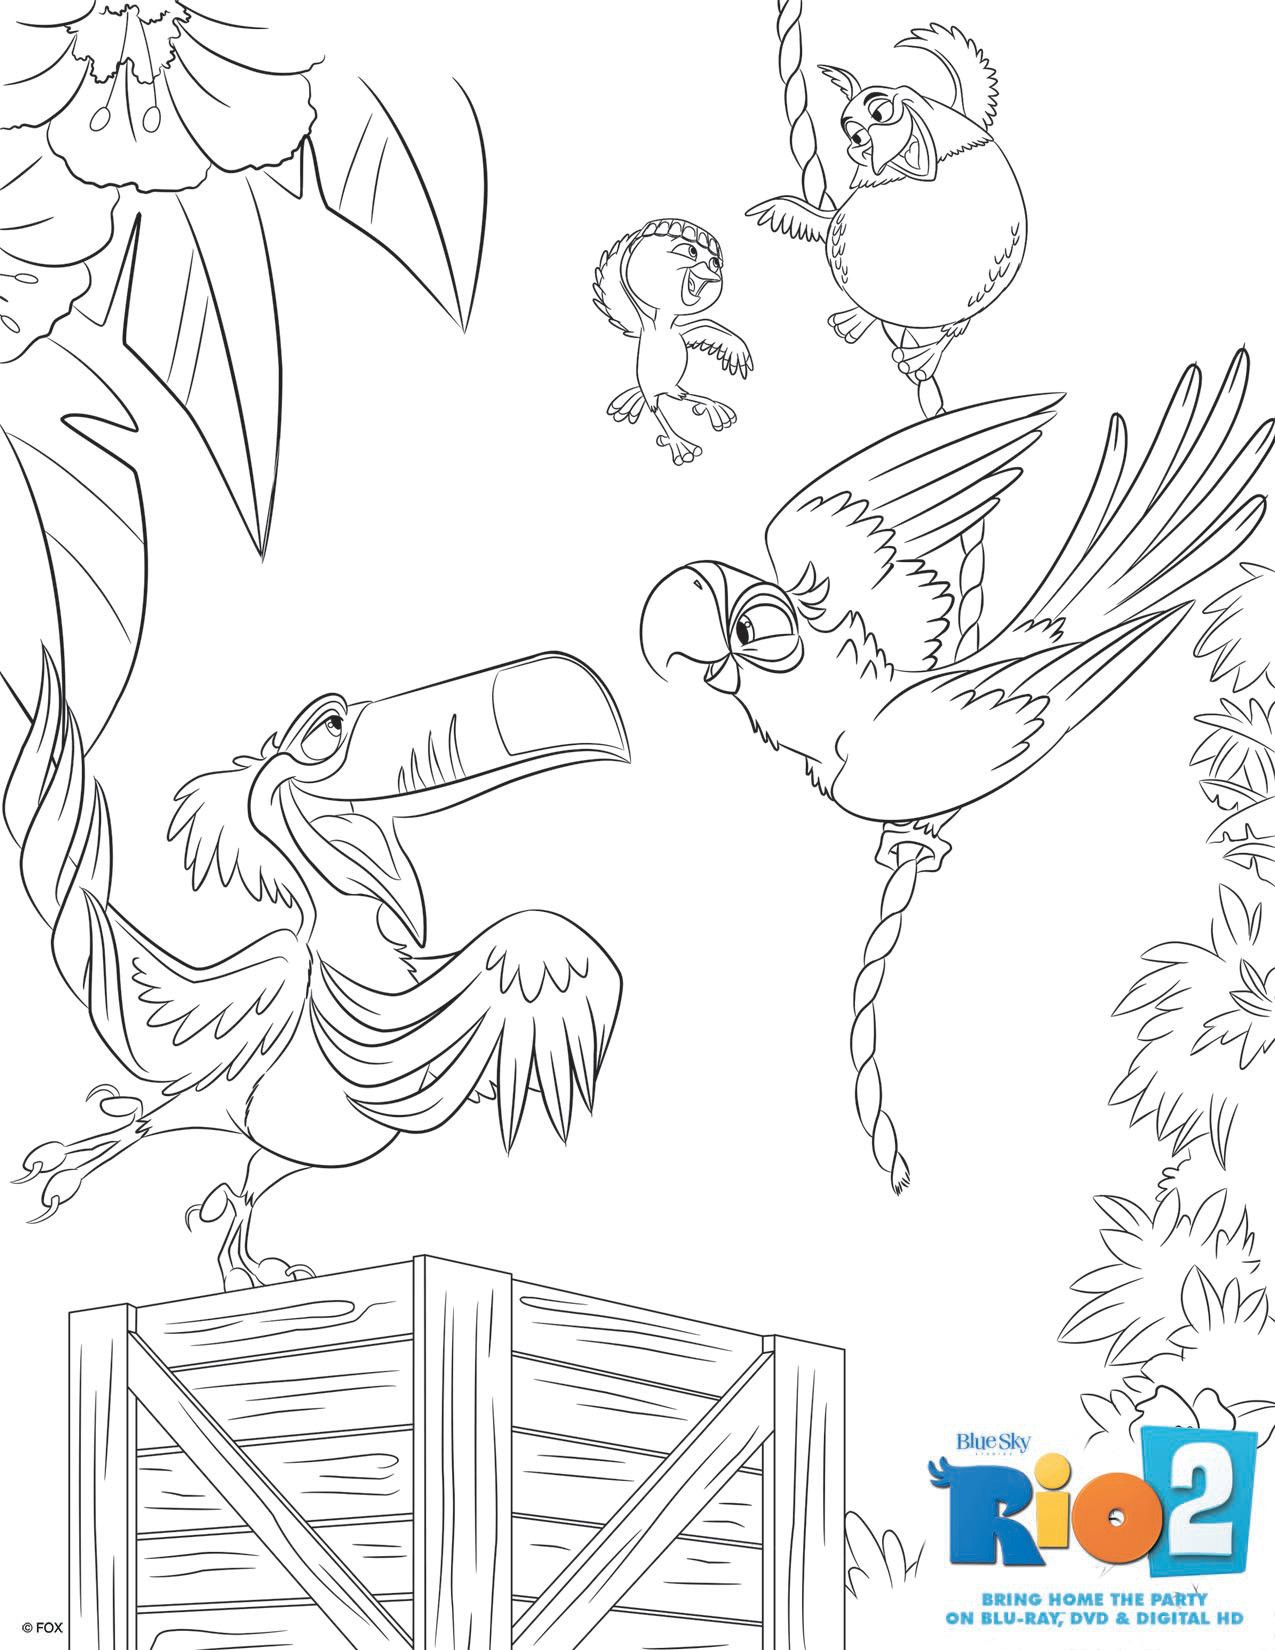 Free Colouring Sheets To Keep Your Little Ones Amused From Rio 2